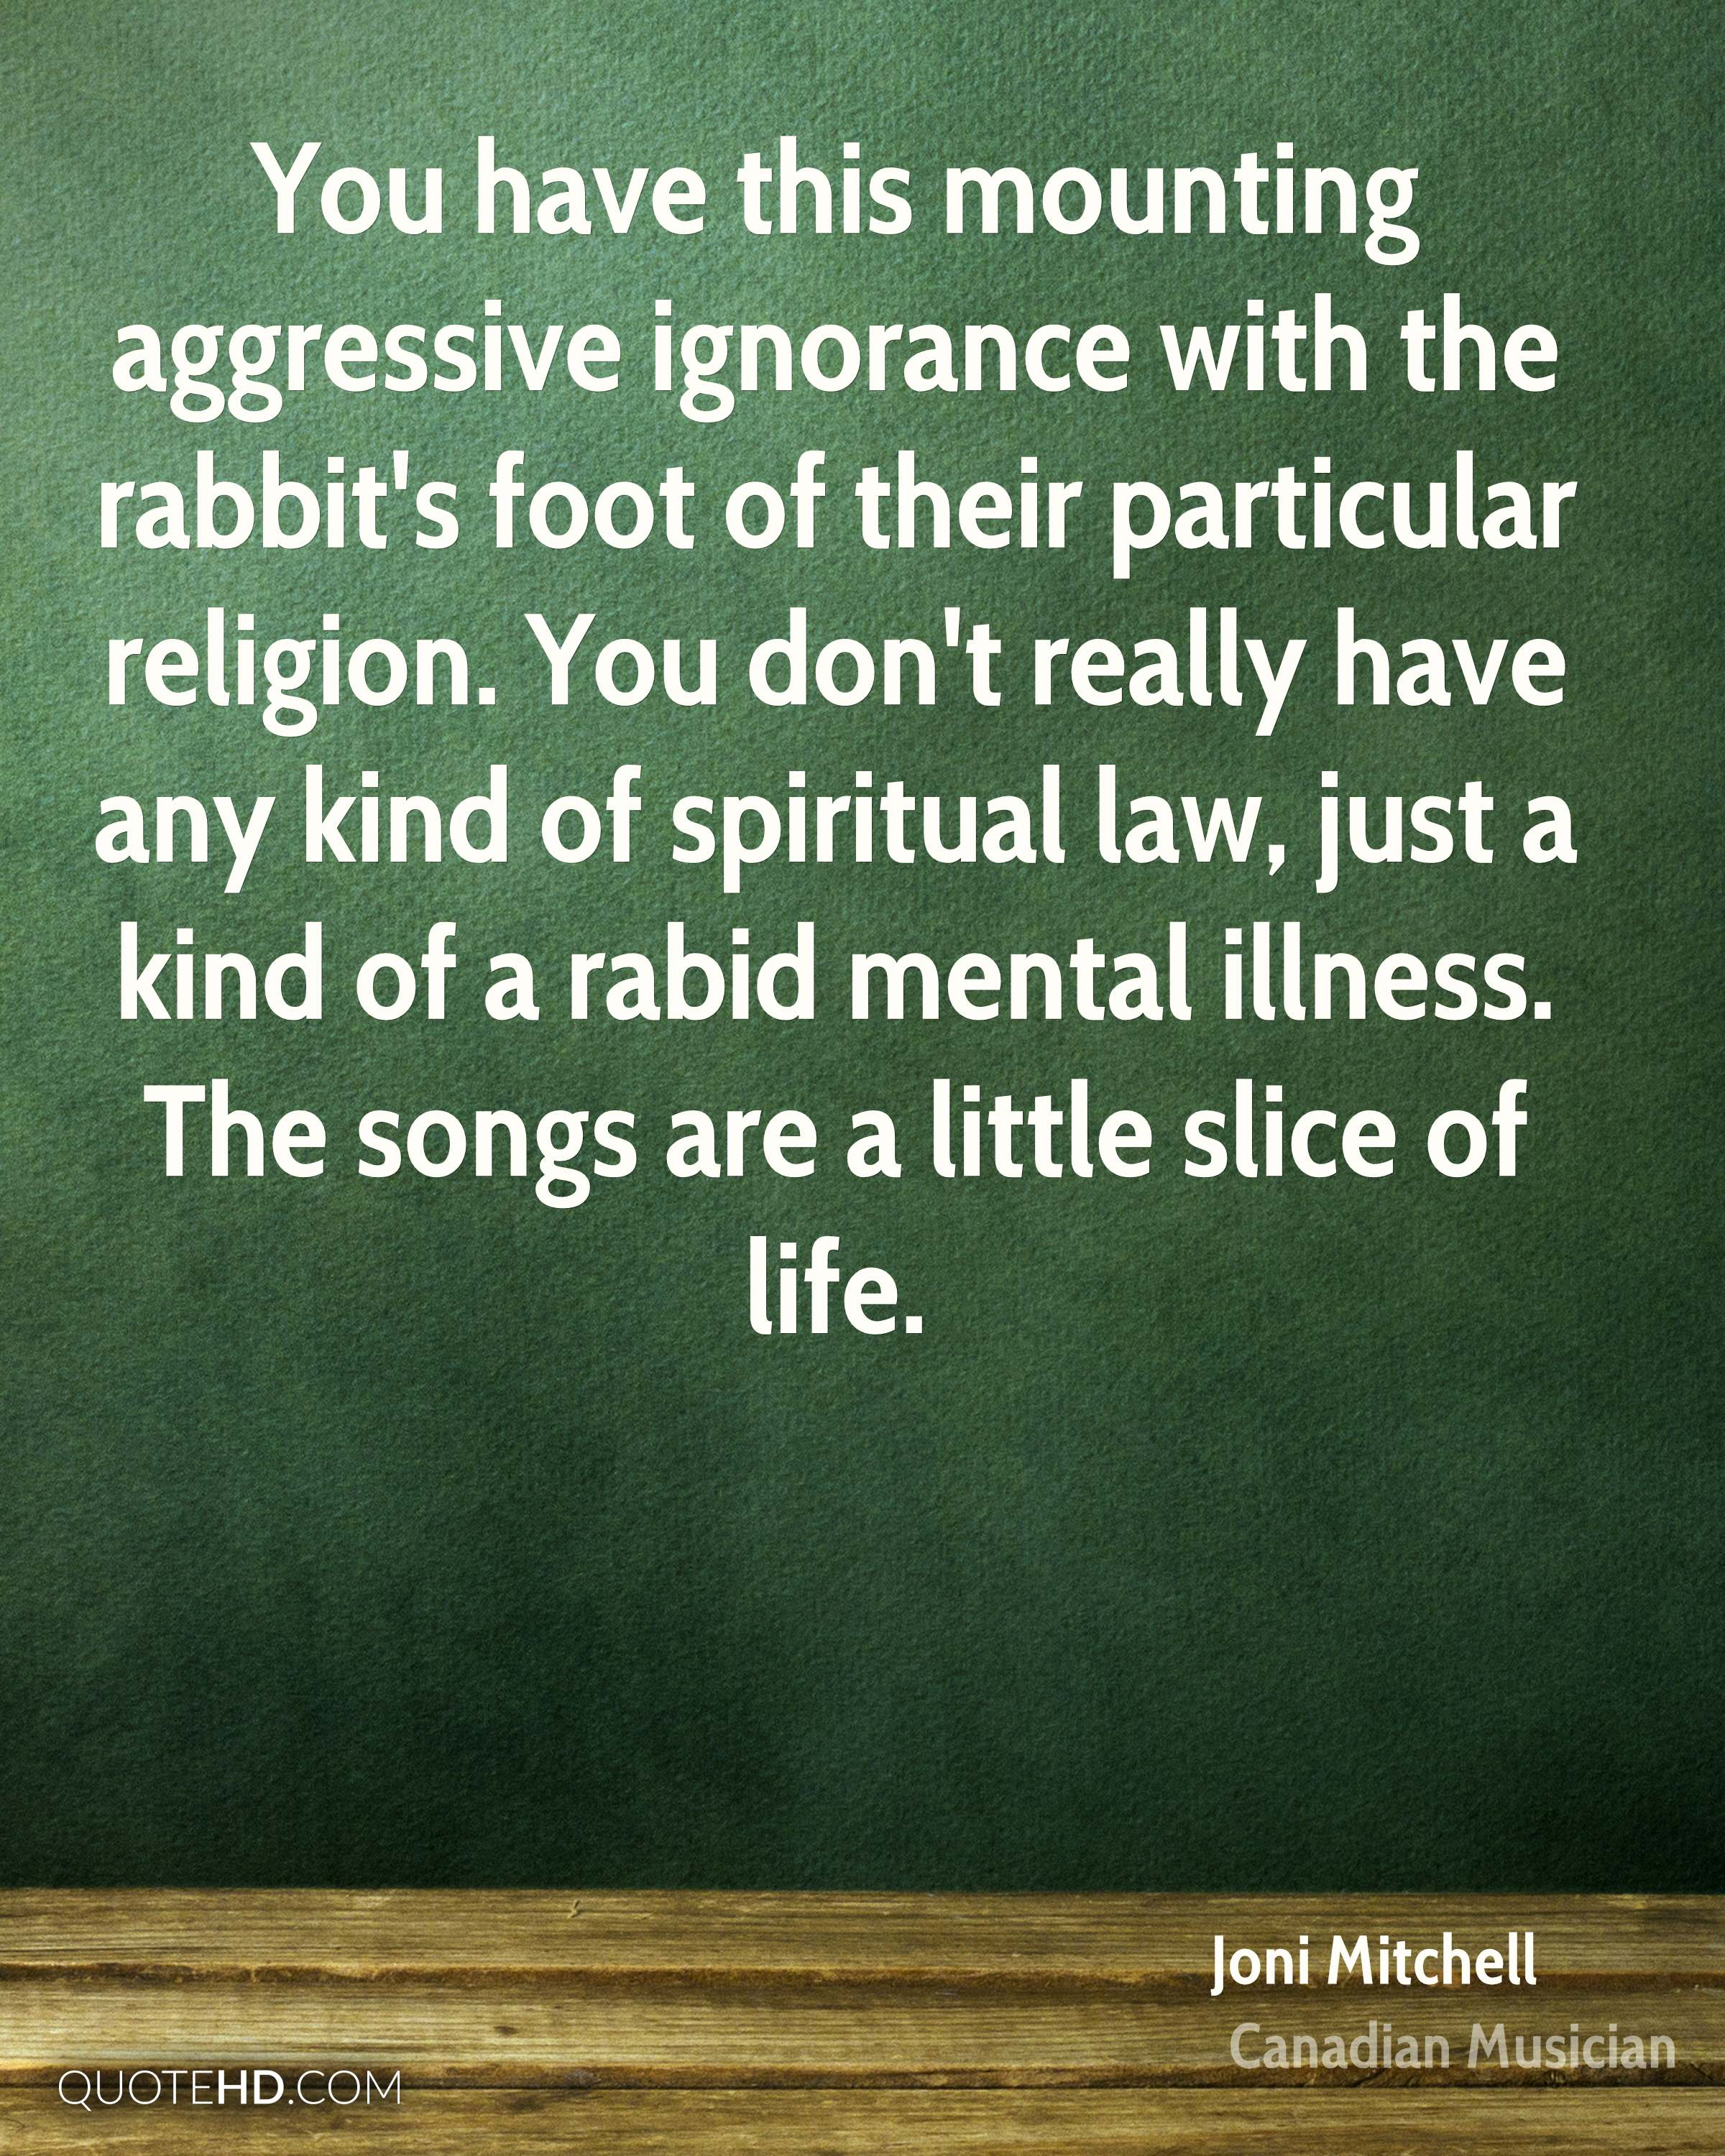 You have this mounting aggressive ignorance with the rabbit's foot of their particular religion. You don't really have any kind of spiritual law, just a kind of a rabid mental illness. The songs are a little slice of life.